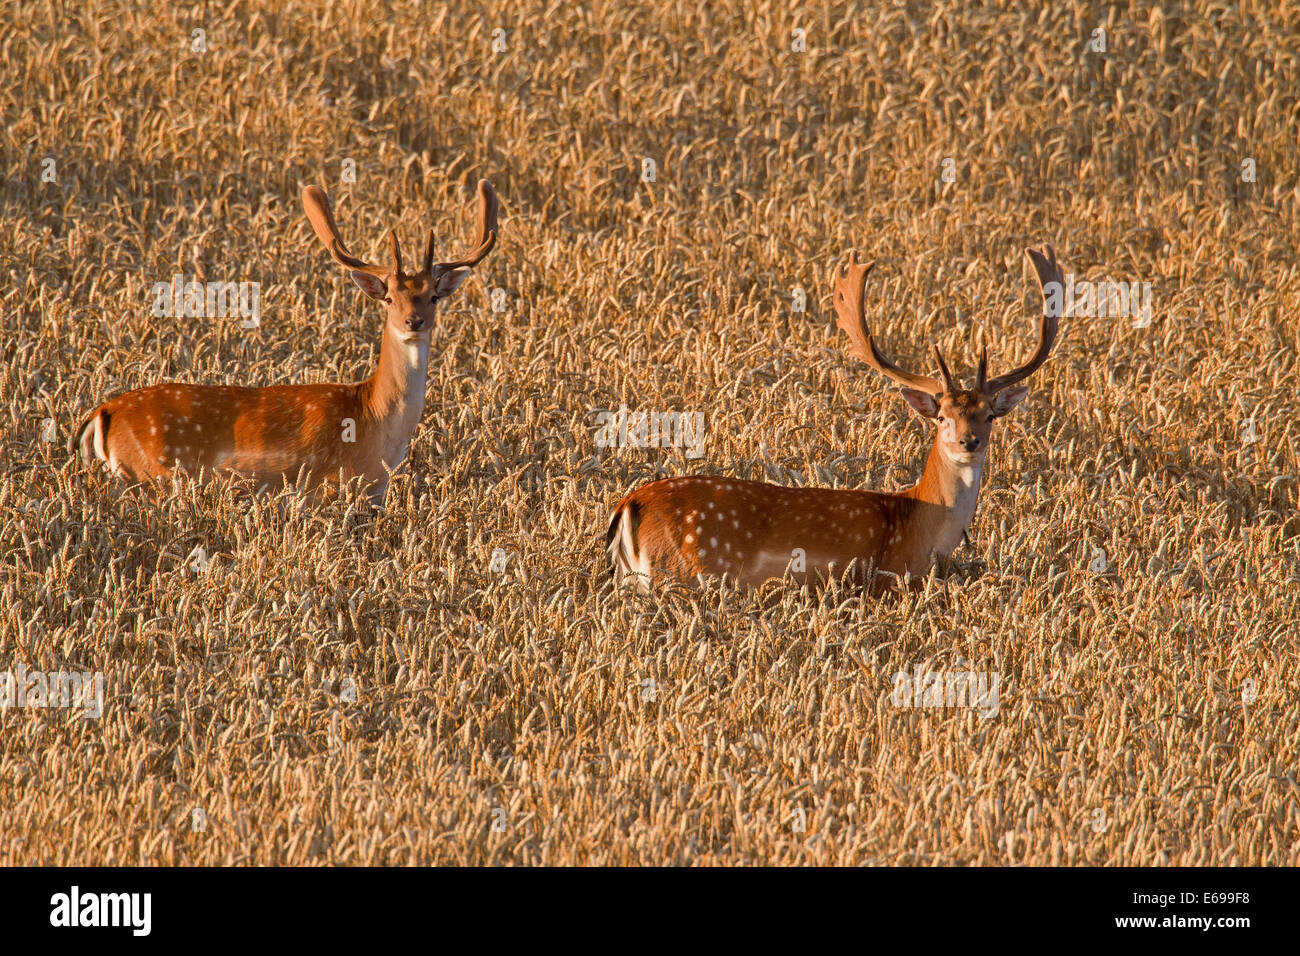 Two fallow deer (Dama dama) bucks with antlers covered in velvet in wheat field in summer - Stock Image